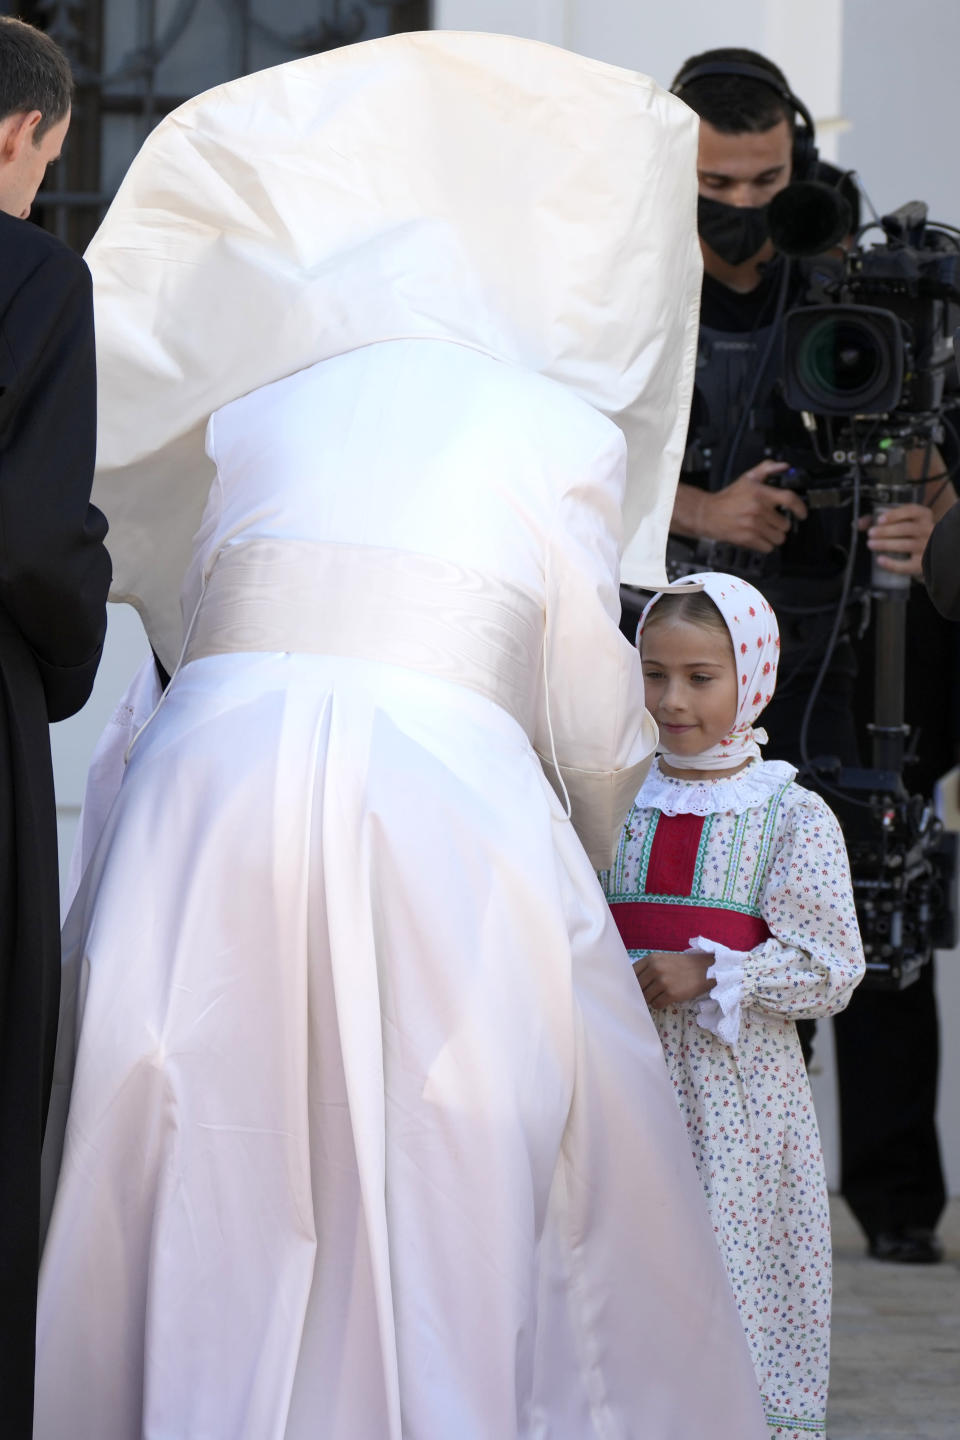 Pope Francis' mantle is blown by the wind as he greets a child during a welcoming ceremony at the presidential palace in Bratislava, Slovakia, Monday, Sept. 13, 2021. Francis is on a four-day visit to Central Europe, in Hungary and Slovakia, in his first big international outing since undergoing intestinal surgery in July. (AP Photo/Gregorio Borgia)